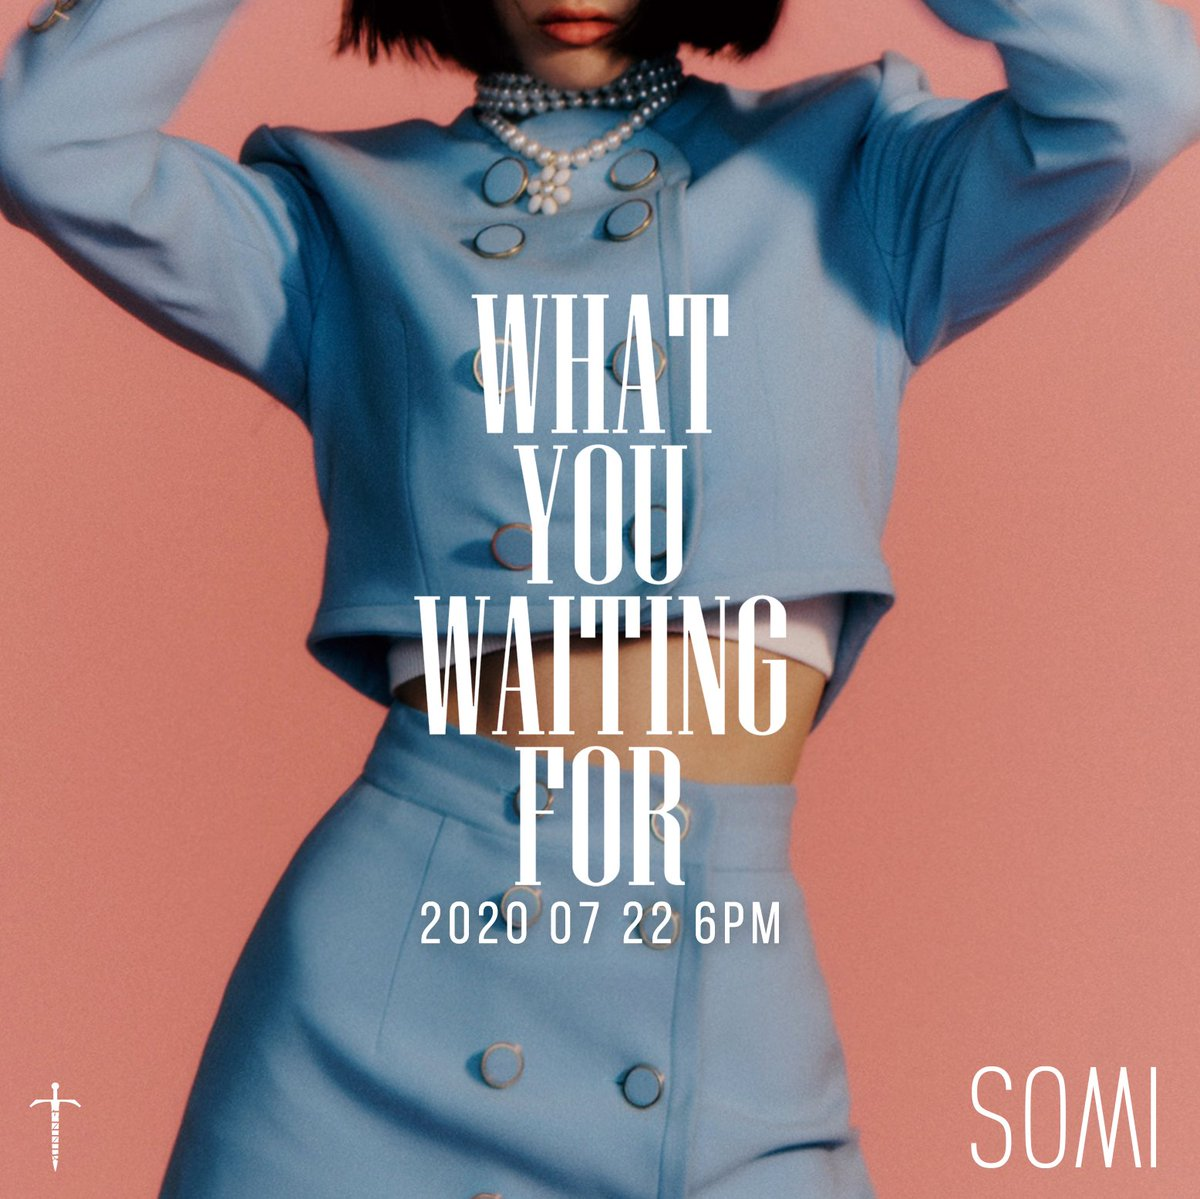 THE BLACK LABEL announces #Somi's comeback on July 22 with new single #WHATYOUWAITINGFOR #KoreanUpdates RZ https://t.co/DI2RIYCcgT